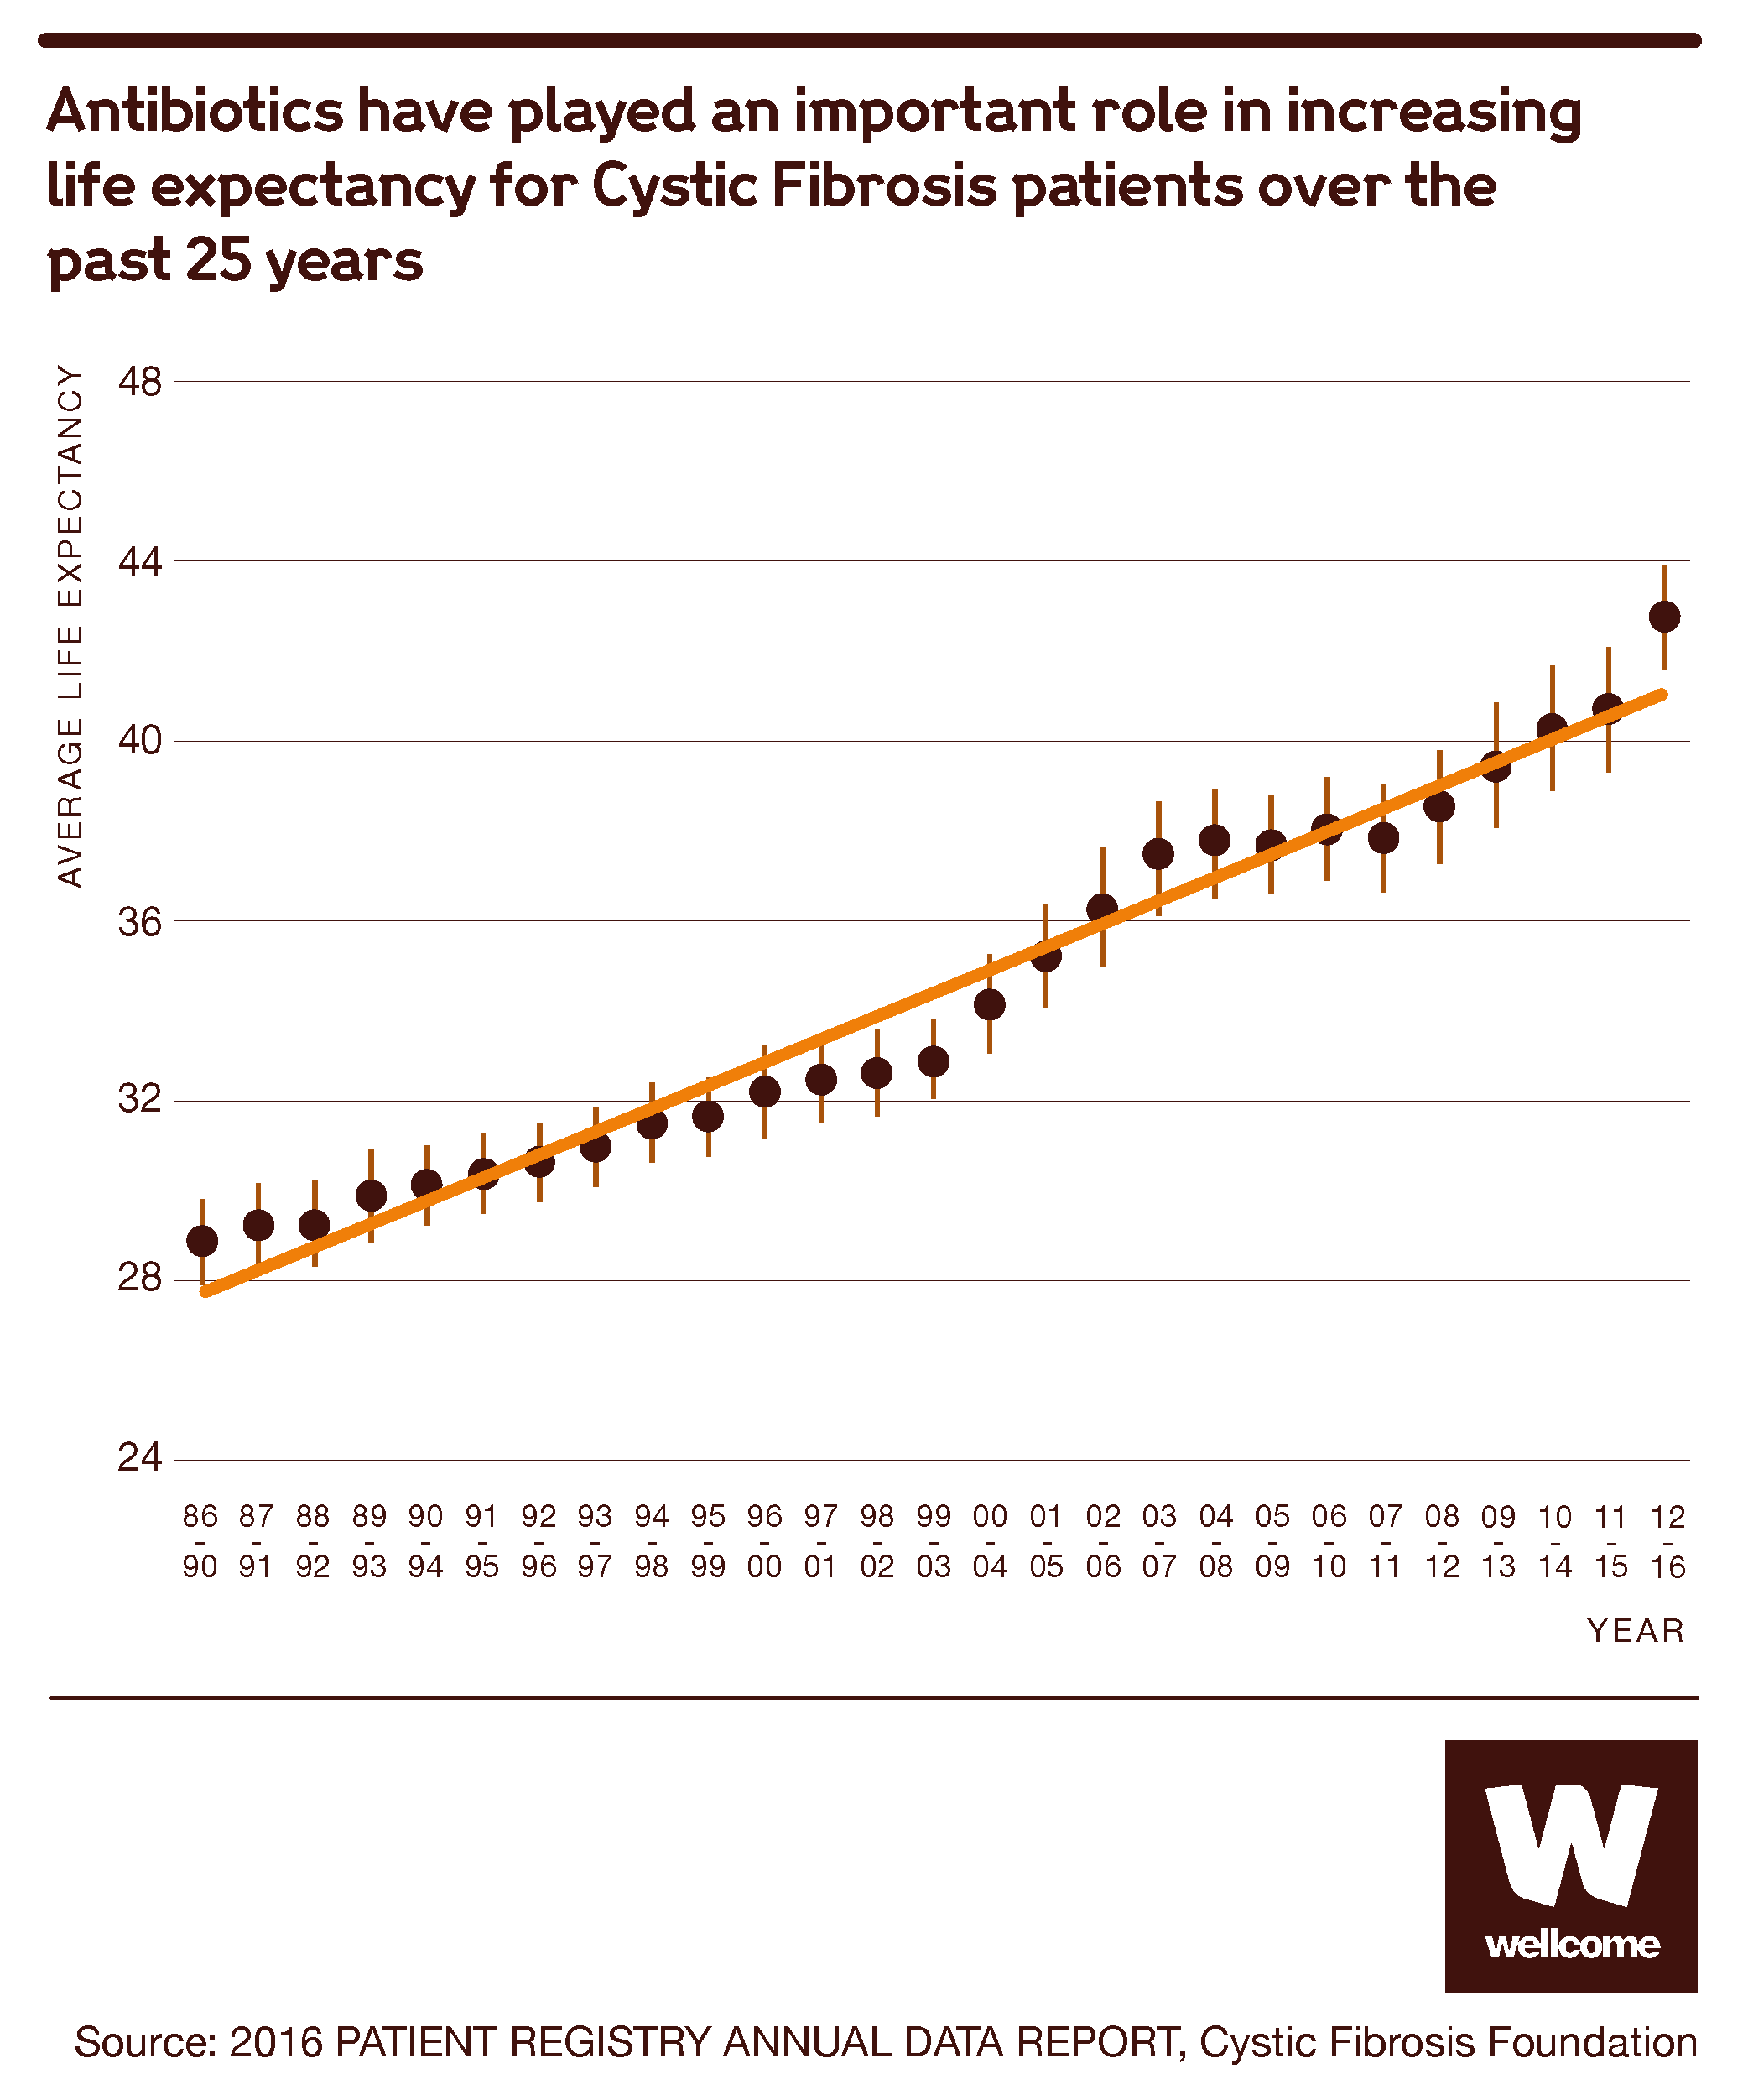 Graph showing the role antibiotics have played in increasing life expectancy for Cystic Fibrosis patients over the past 25 years.